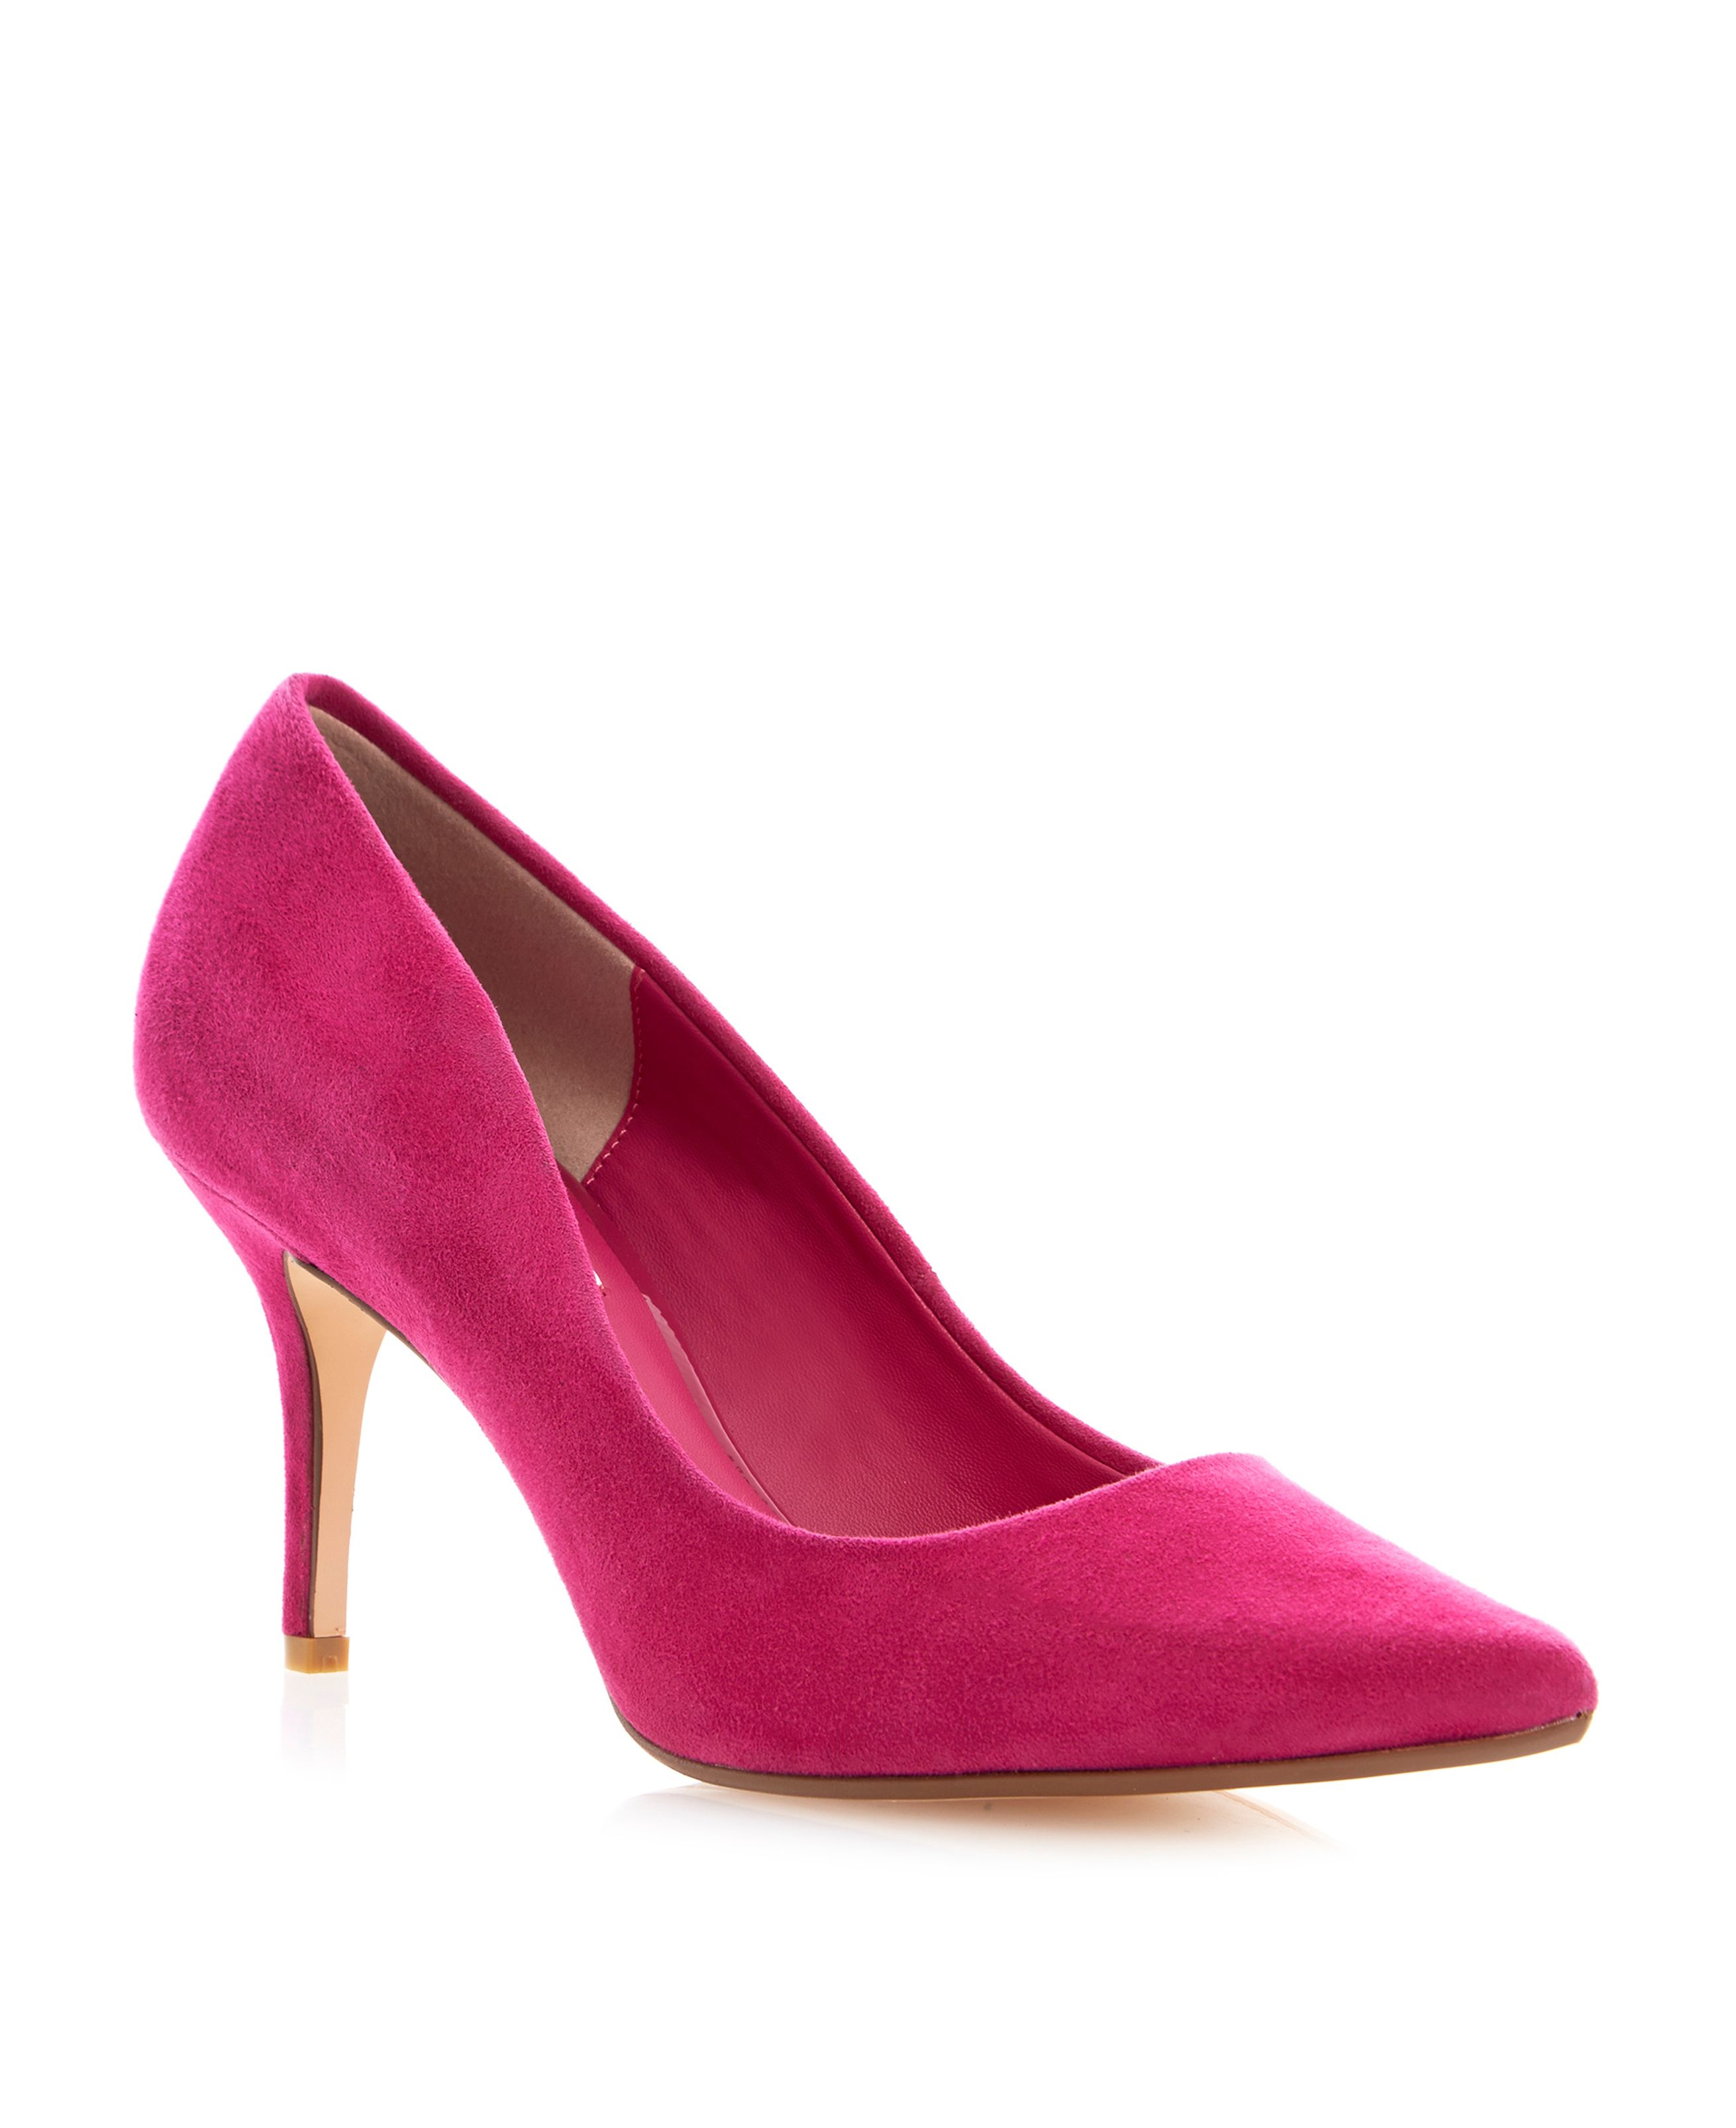 Alina pointed toe mid heel court shoes